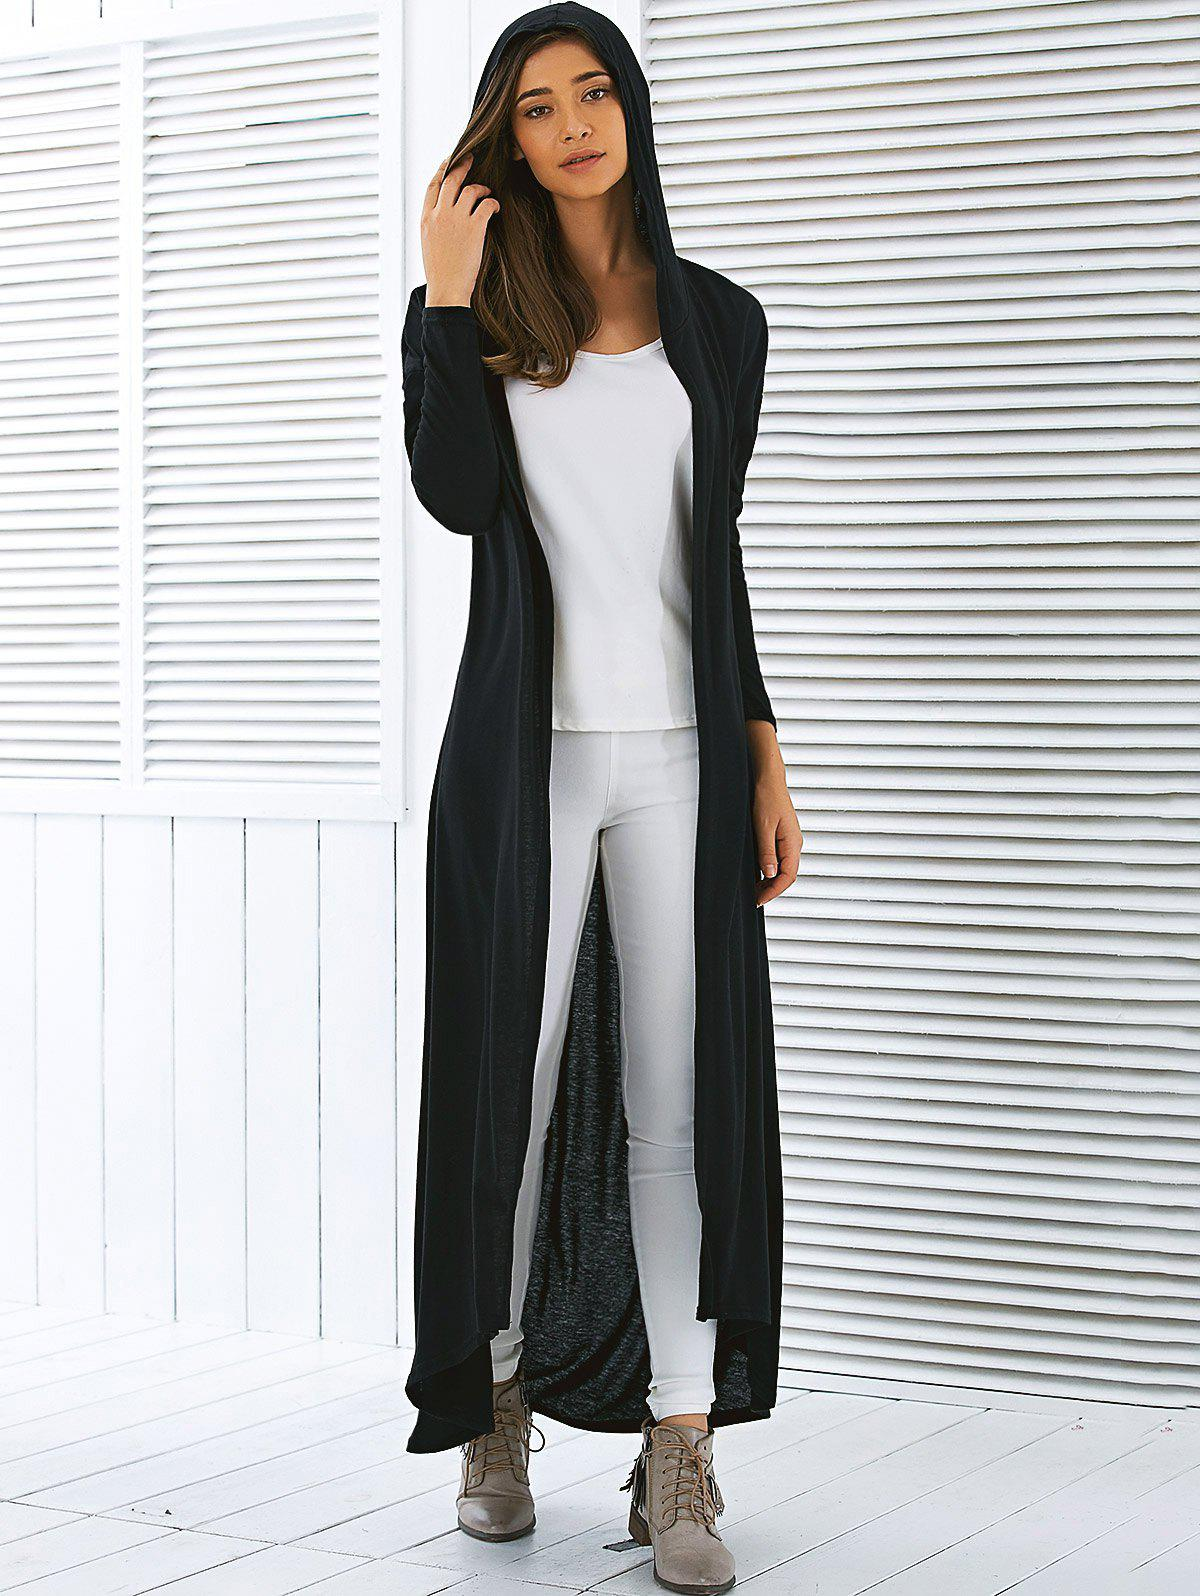 https://www.dresslily.com/long-sleeve-maxi-cardigan-product1617098.html?lkid=12823953